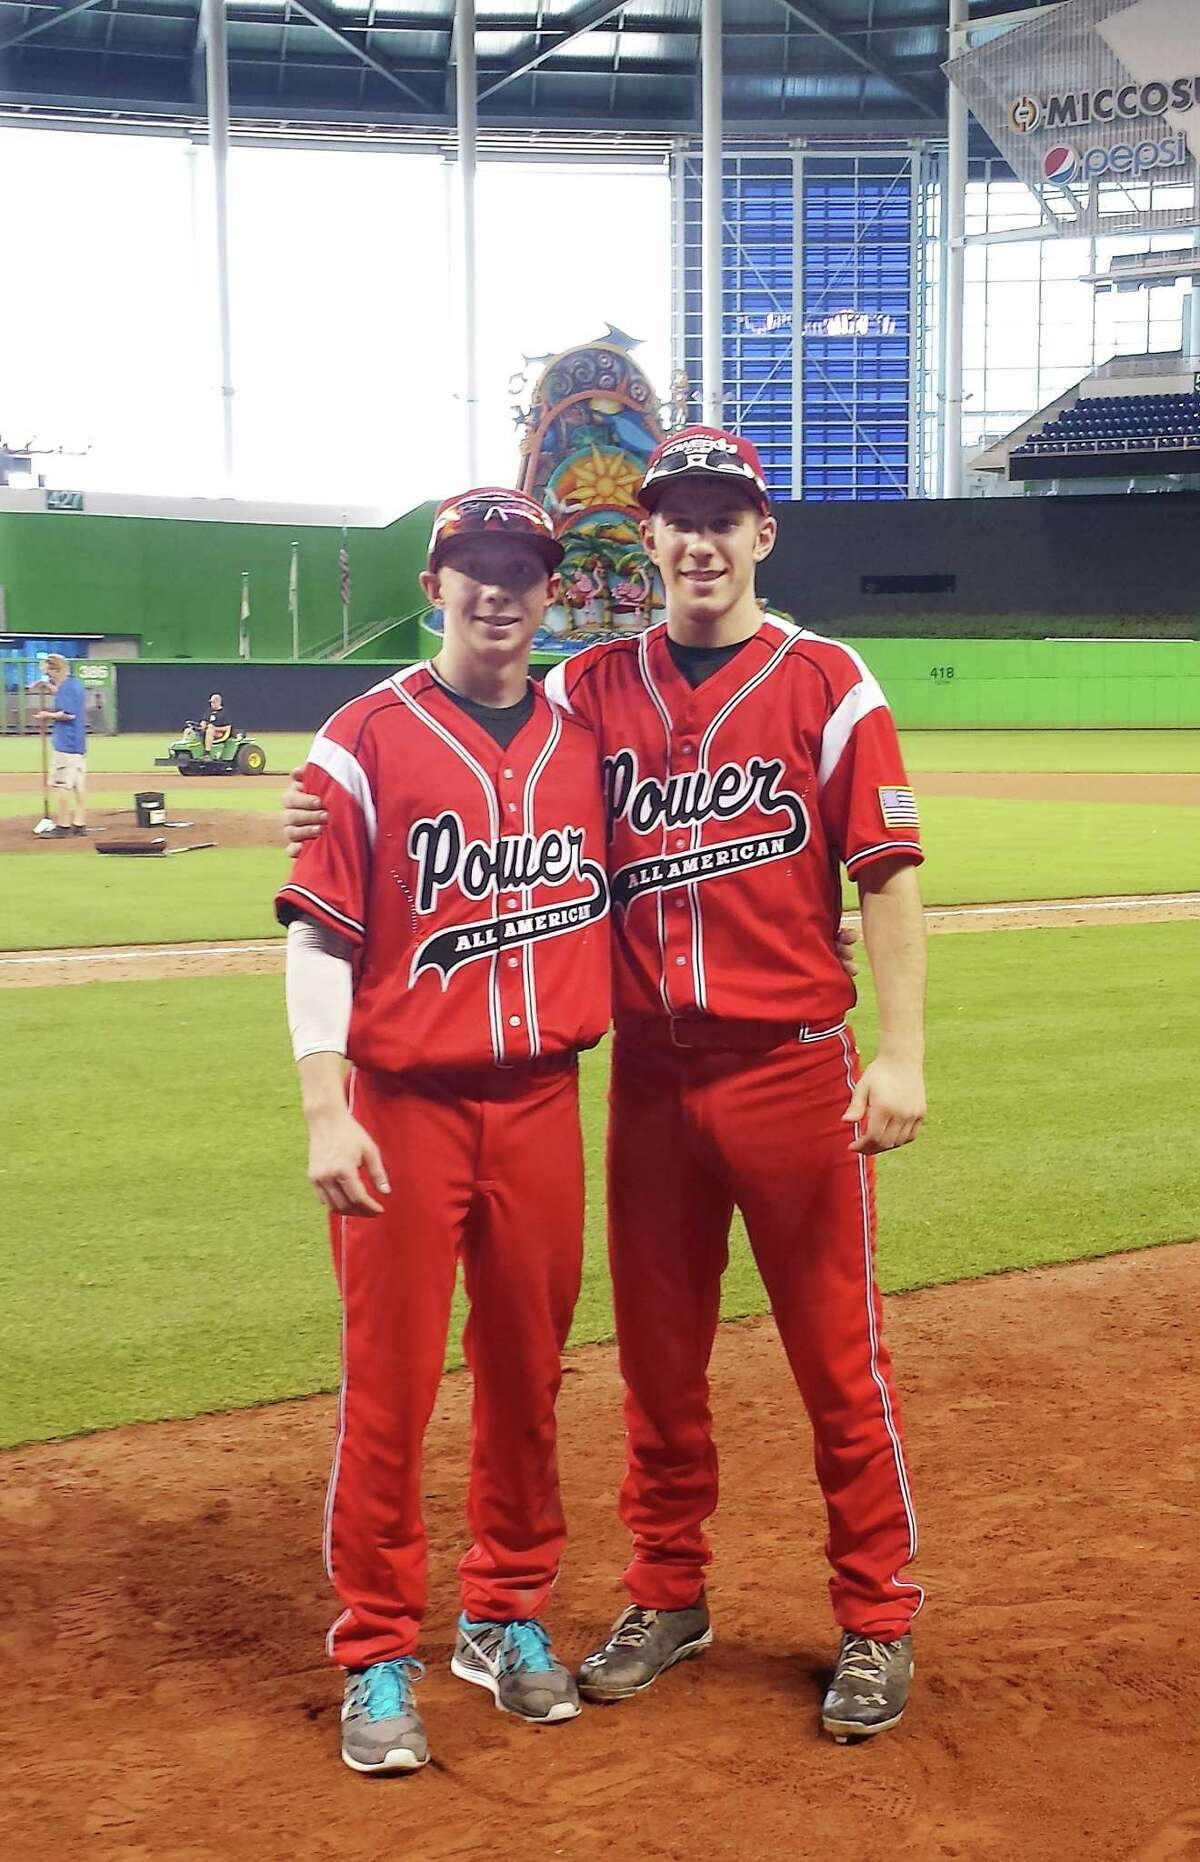 Photo courtesy of Cindy Moskey Derek Kaspercyk, left, and Brian Moskey get ready to play in the 2014 Power Showcase at Miami's Marlins Park.